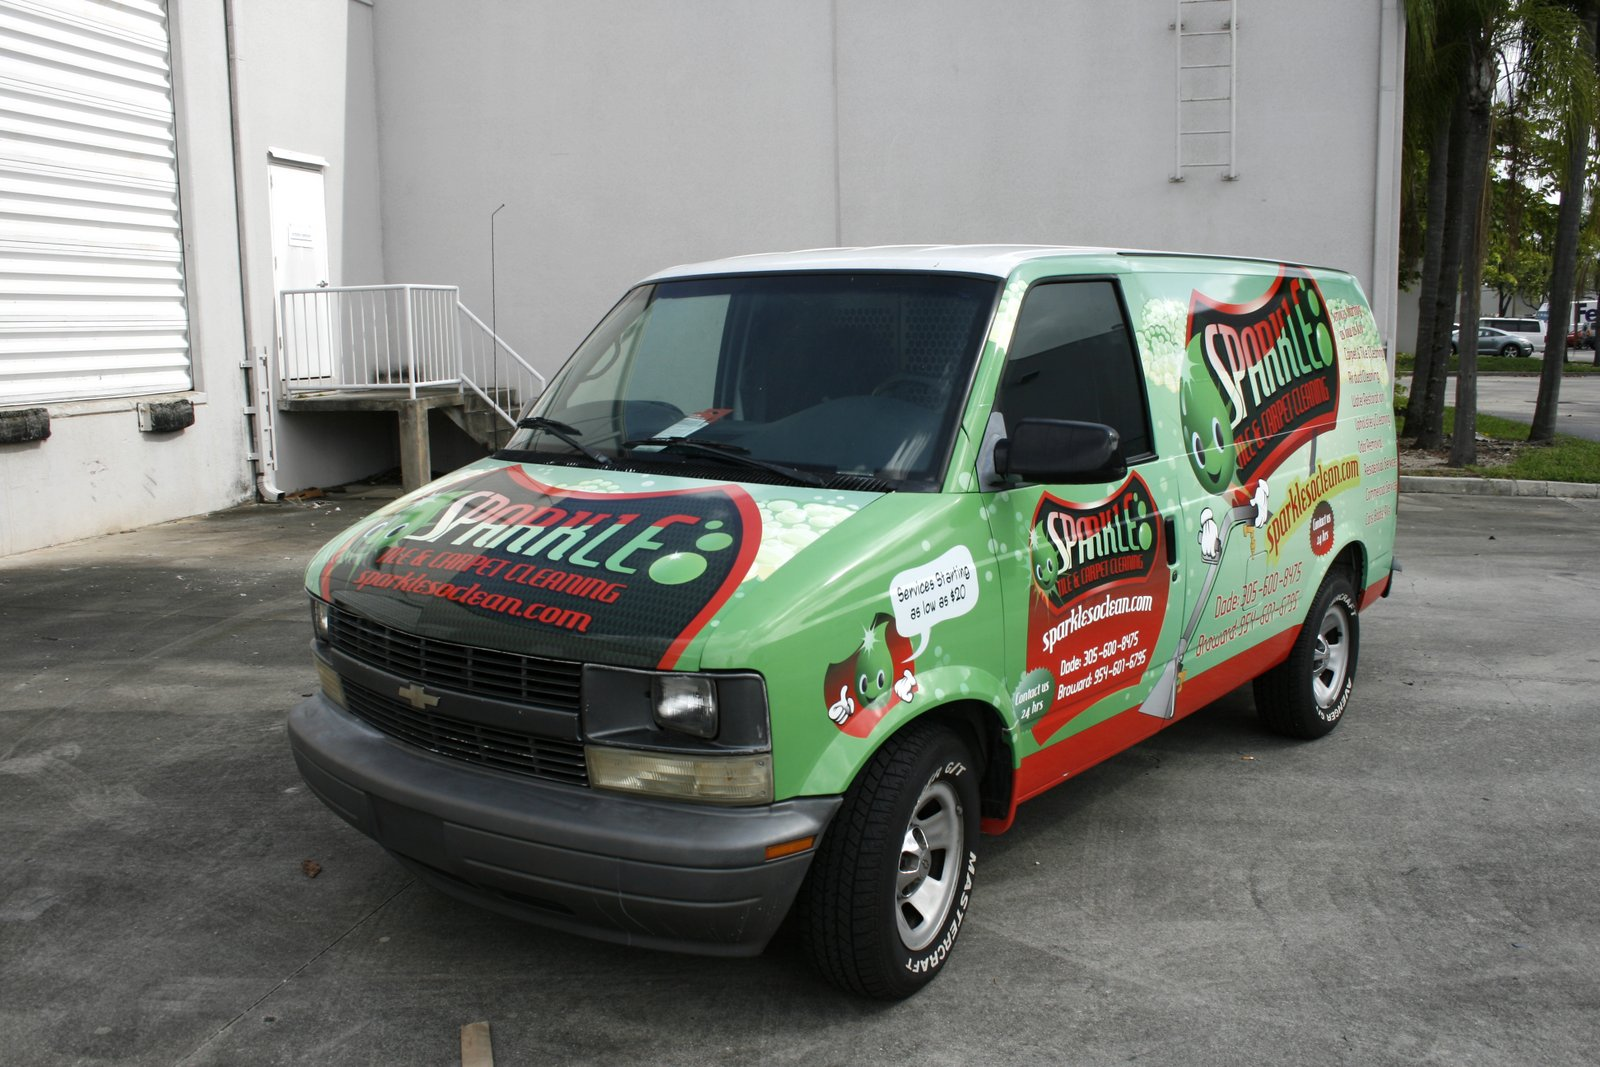 hight resolution of fort lauderdale fl chevy astro van car wrap for carpet cleaing company sparkle so clean car wrap solutions